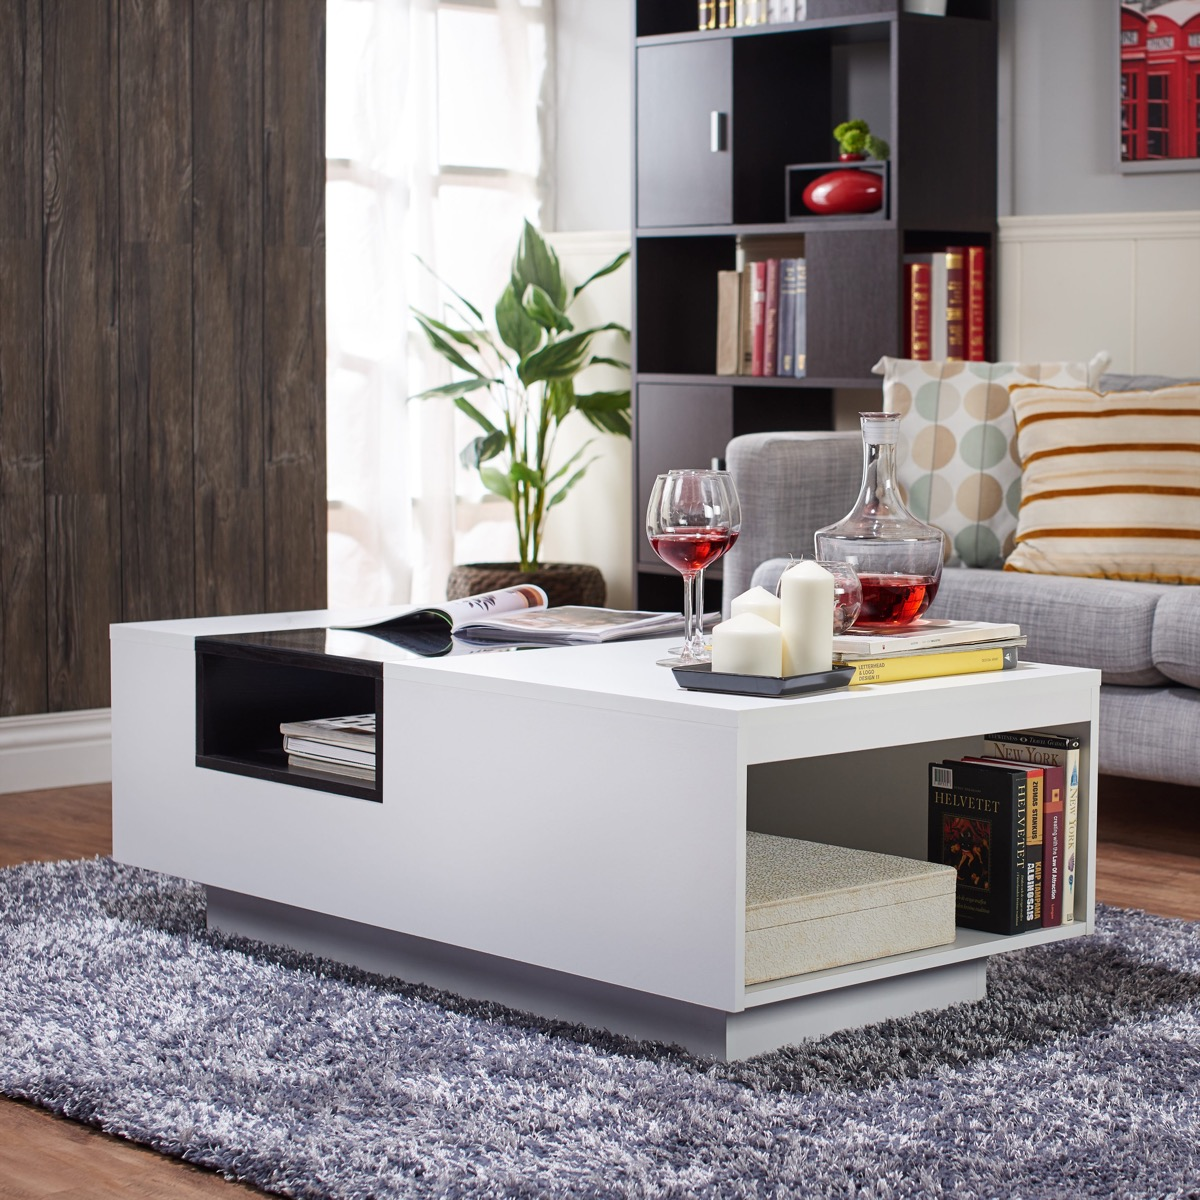 White-Modern-Coffee-Table-with-Book-Storage-Shelves